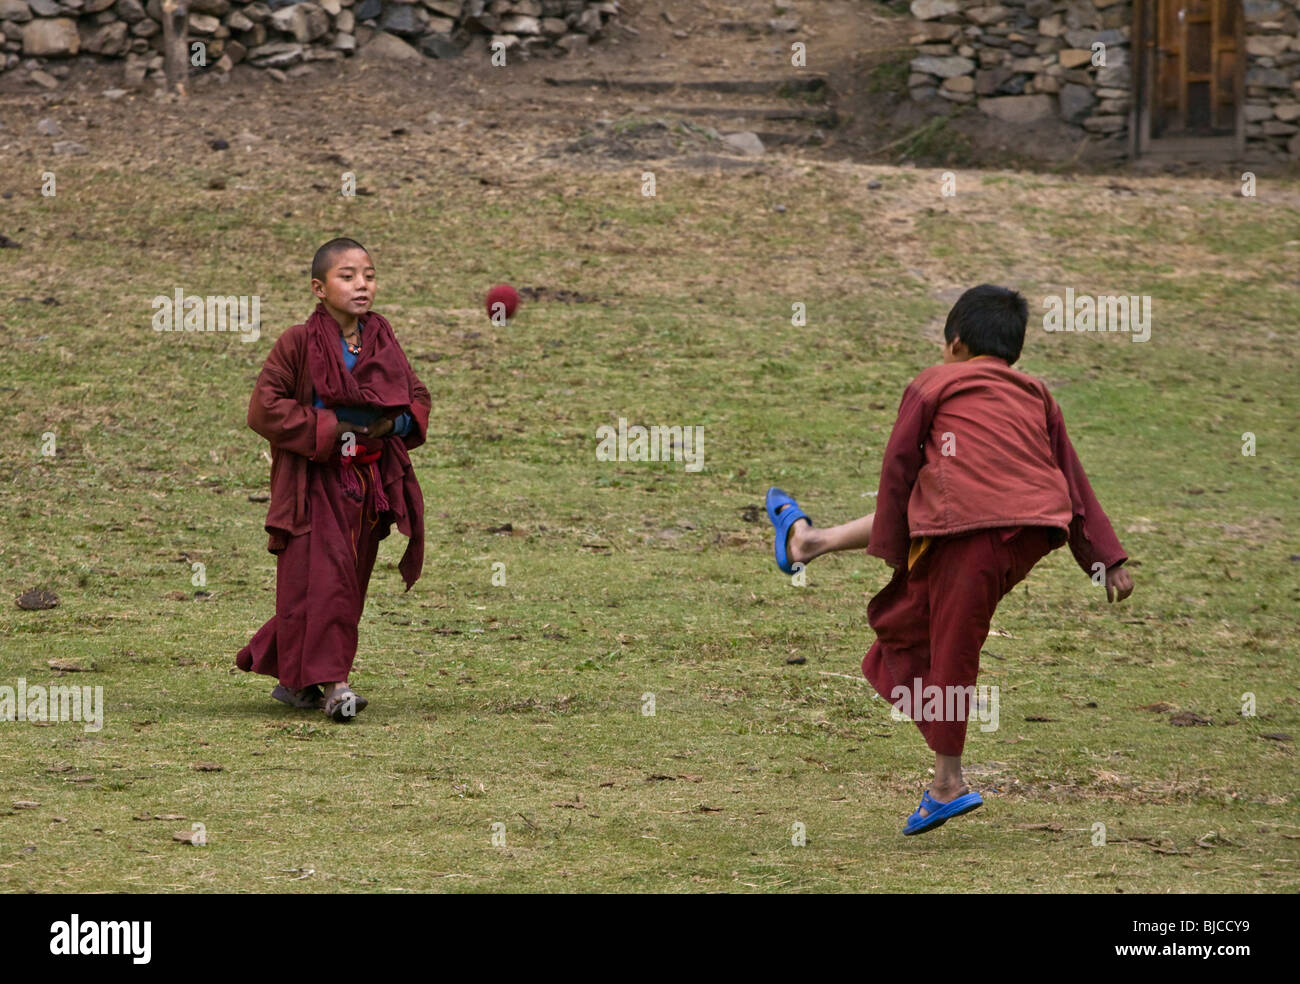 Young MONKS play soccer at a remote TIBETAN BUDDHIST MONASTERY - NEPAL HIMALAYA Stock Photo